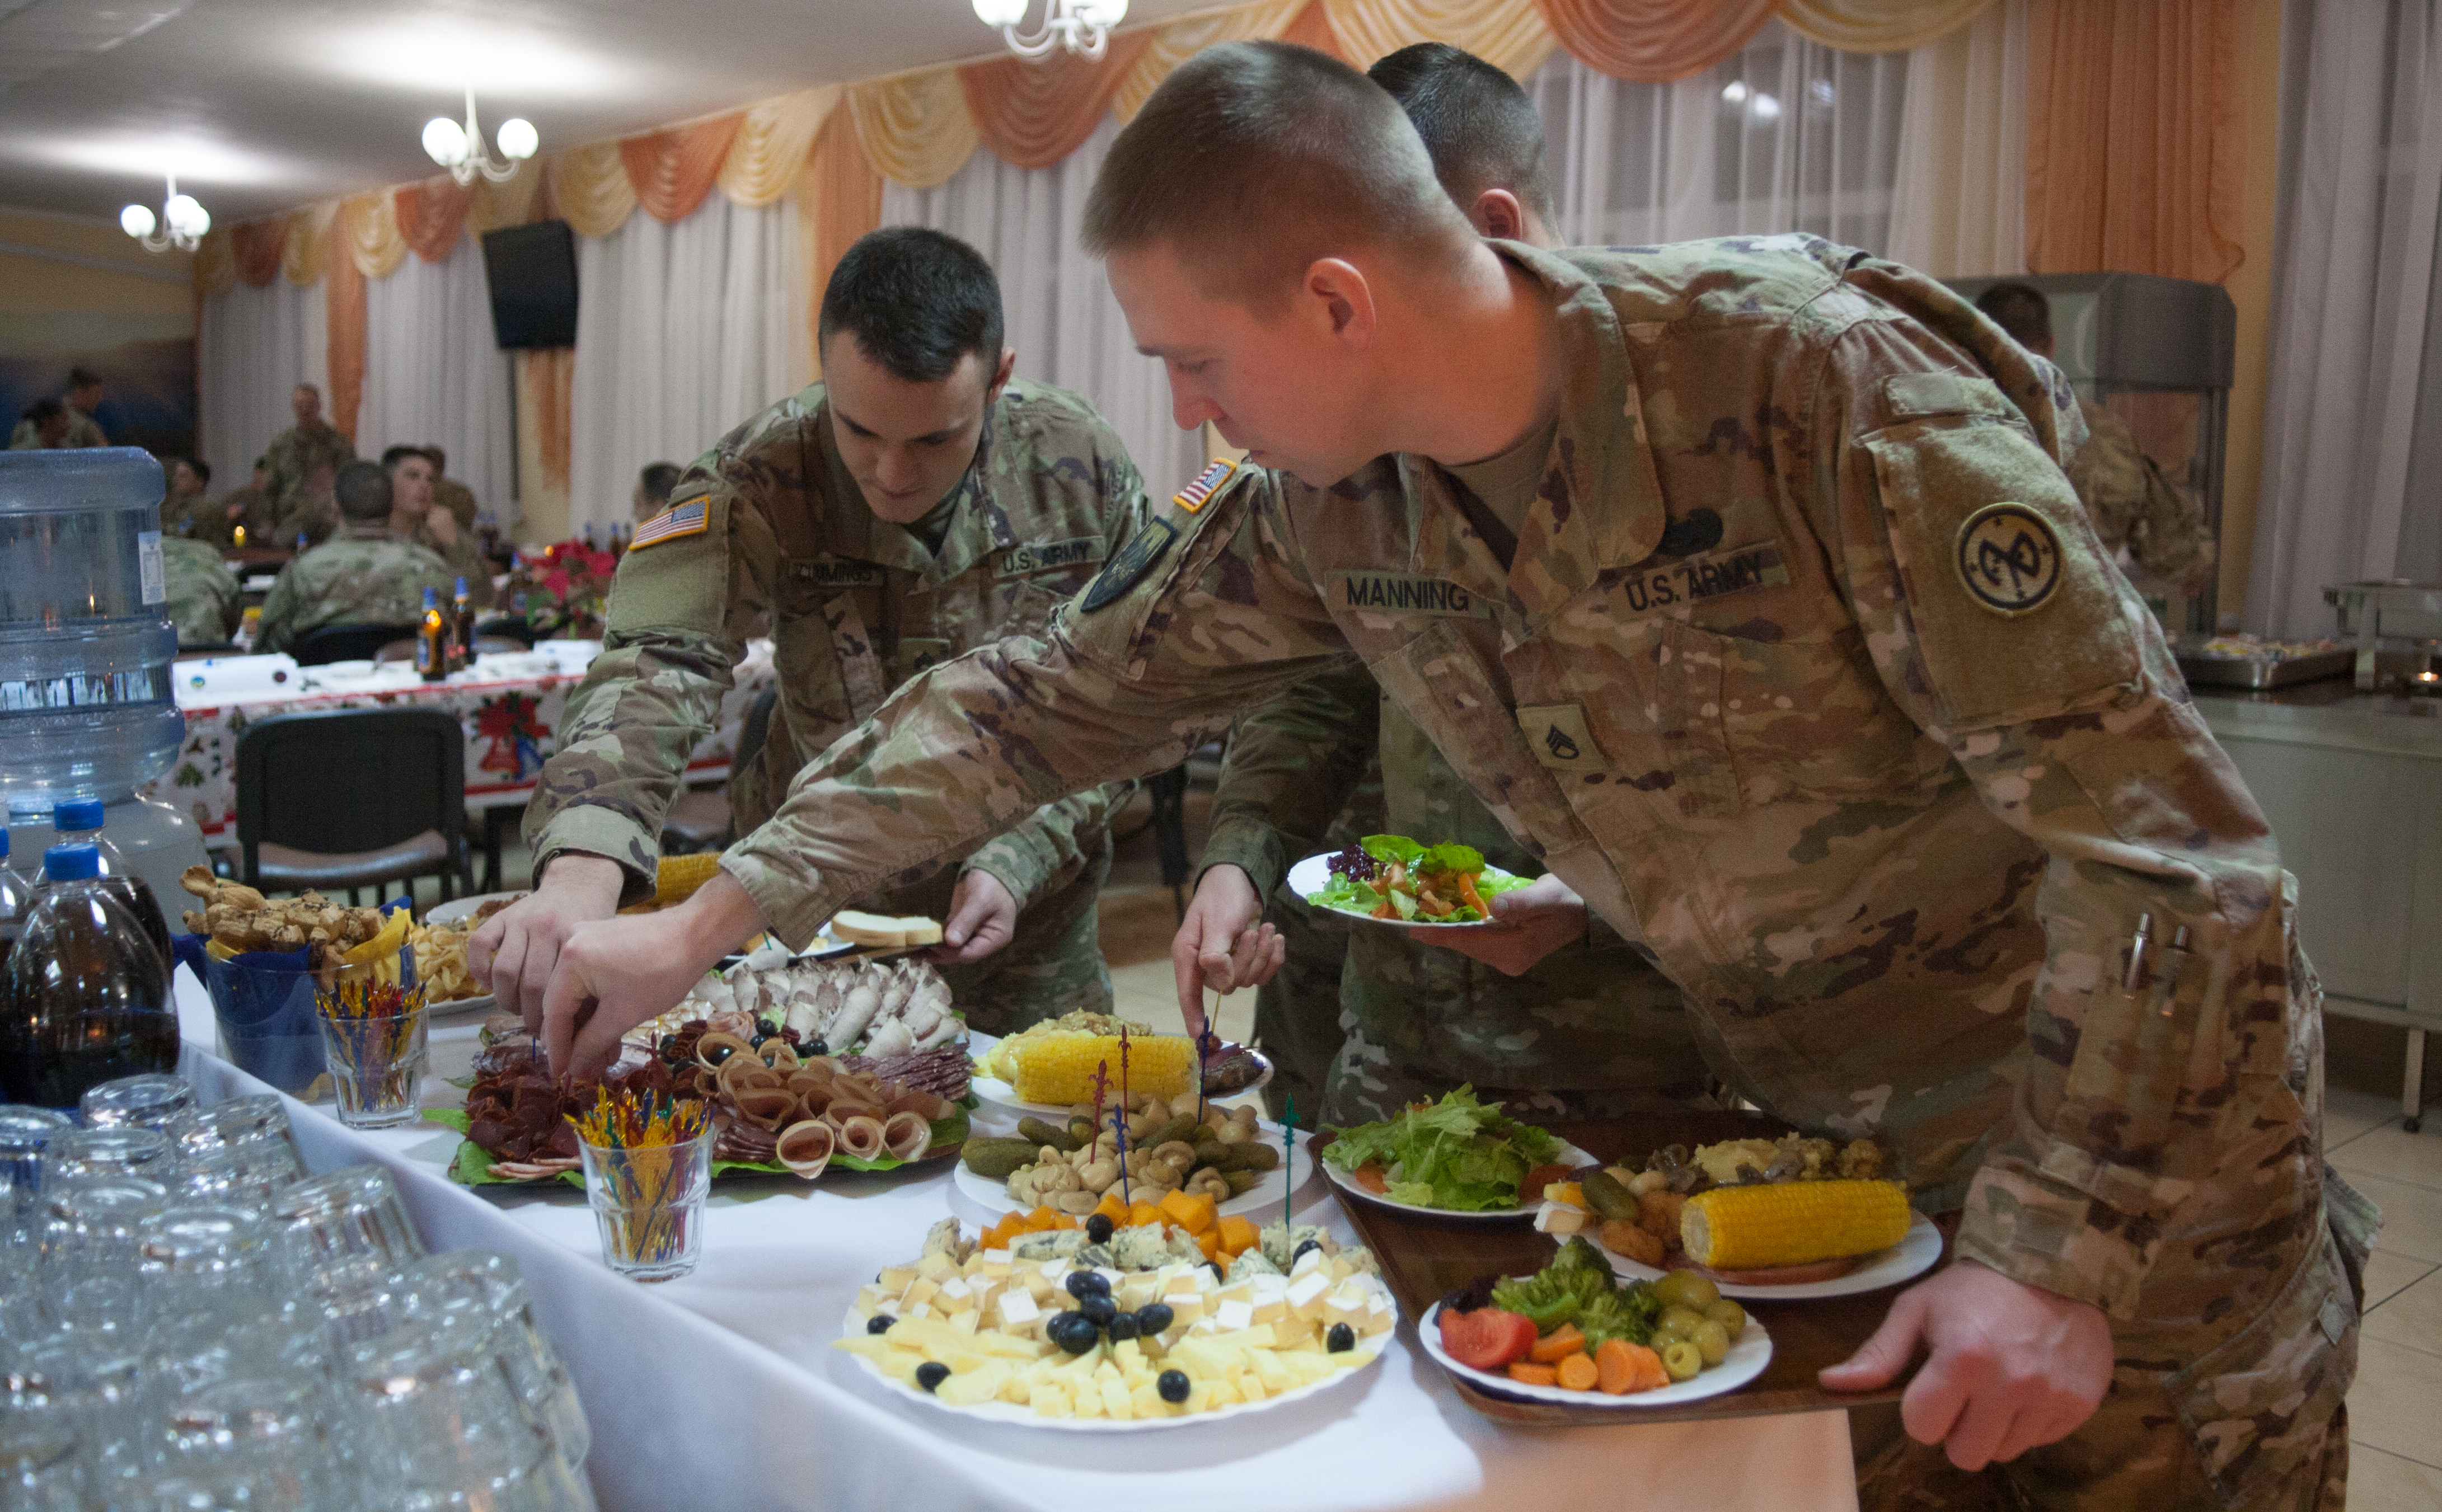 Yavoriv, Ukraine – 27th Infantry Brigade Combat Team Soldiers assigned to the Joint Multinational Training Group – Ukraine host a Christmas dinner at the Yavoriv Combat Training Center near Yavoriv, Ukraine. Currently more than 220 of the Brigade's Soldiers are deployed overseas working alongside the Ukrainian Army. (U.S. Army photo by Sgt. Alexander Rector)